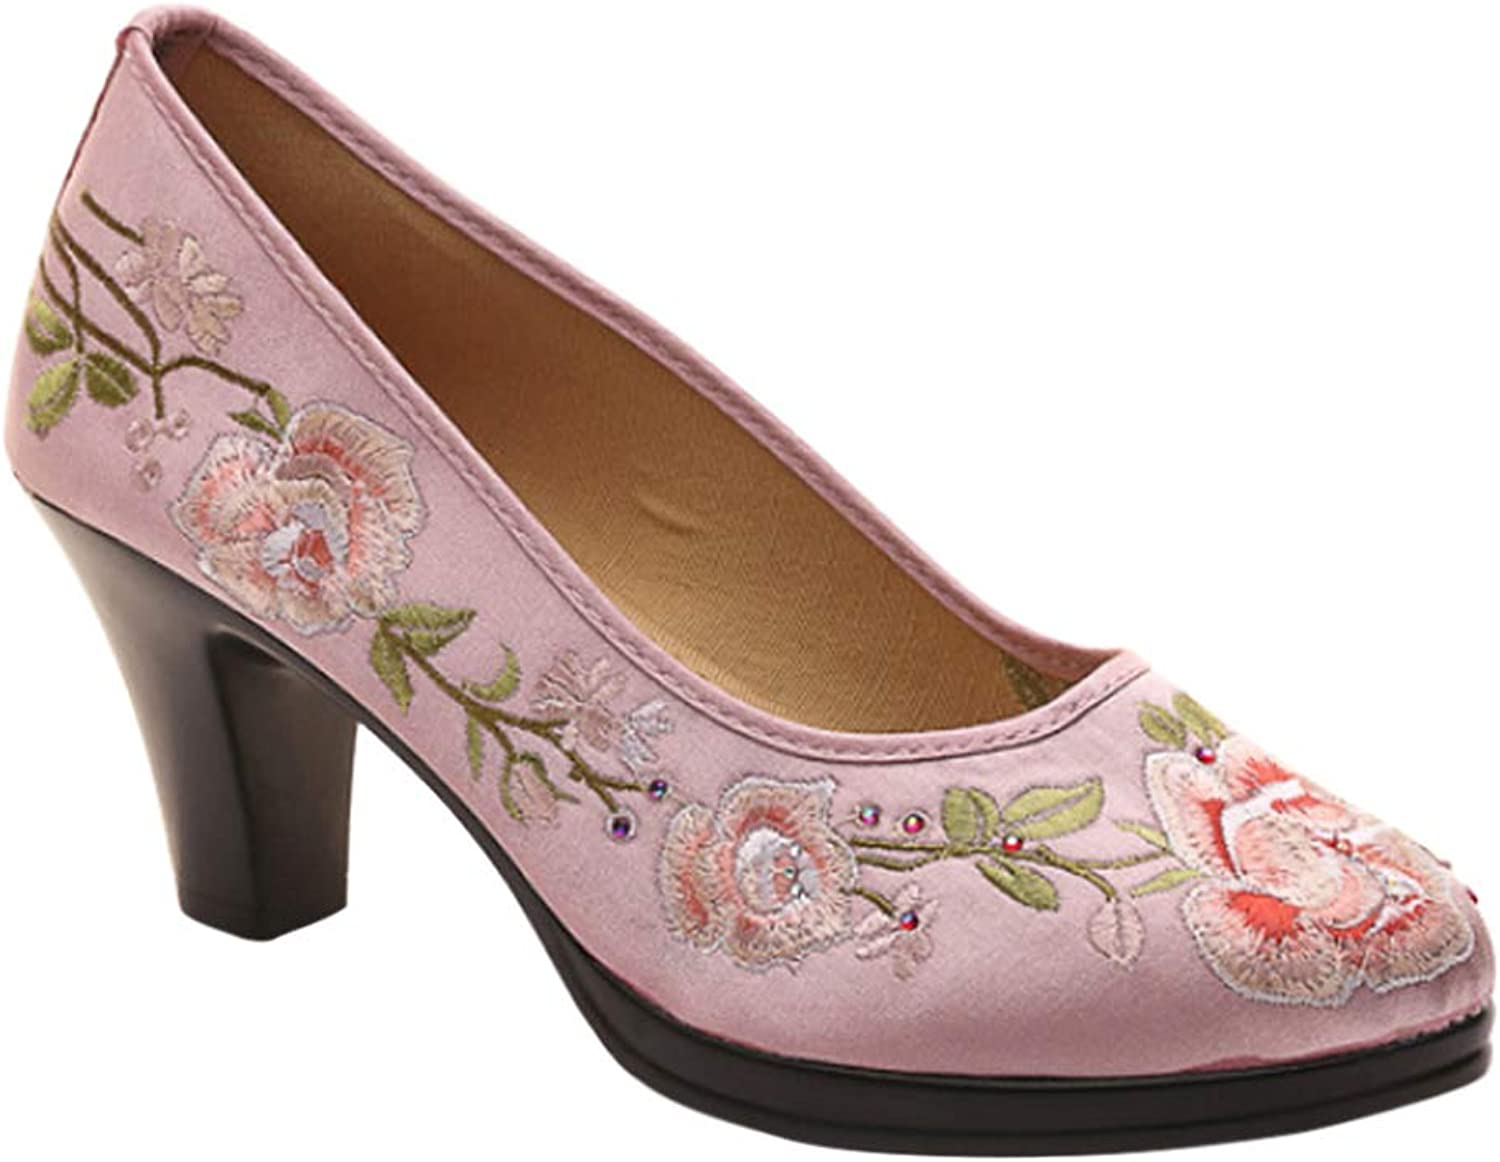 Uirend Women Cheongsam Pumps - Embroidery shoes Court shoes Slip On Thick Heel Round Toe Ethnic Style Party Dress Elegant Casual